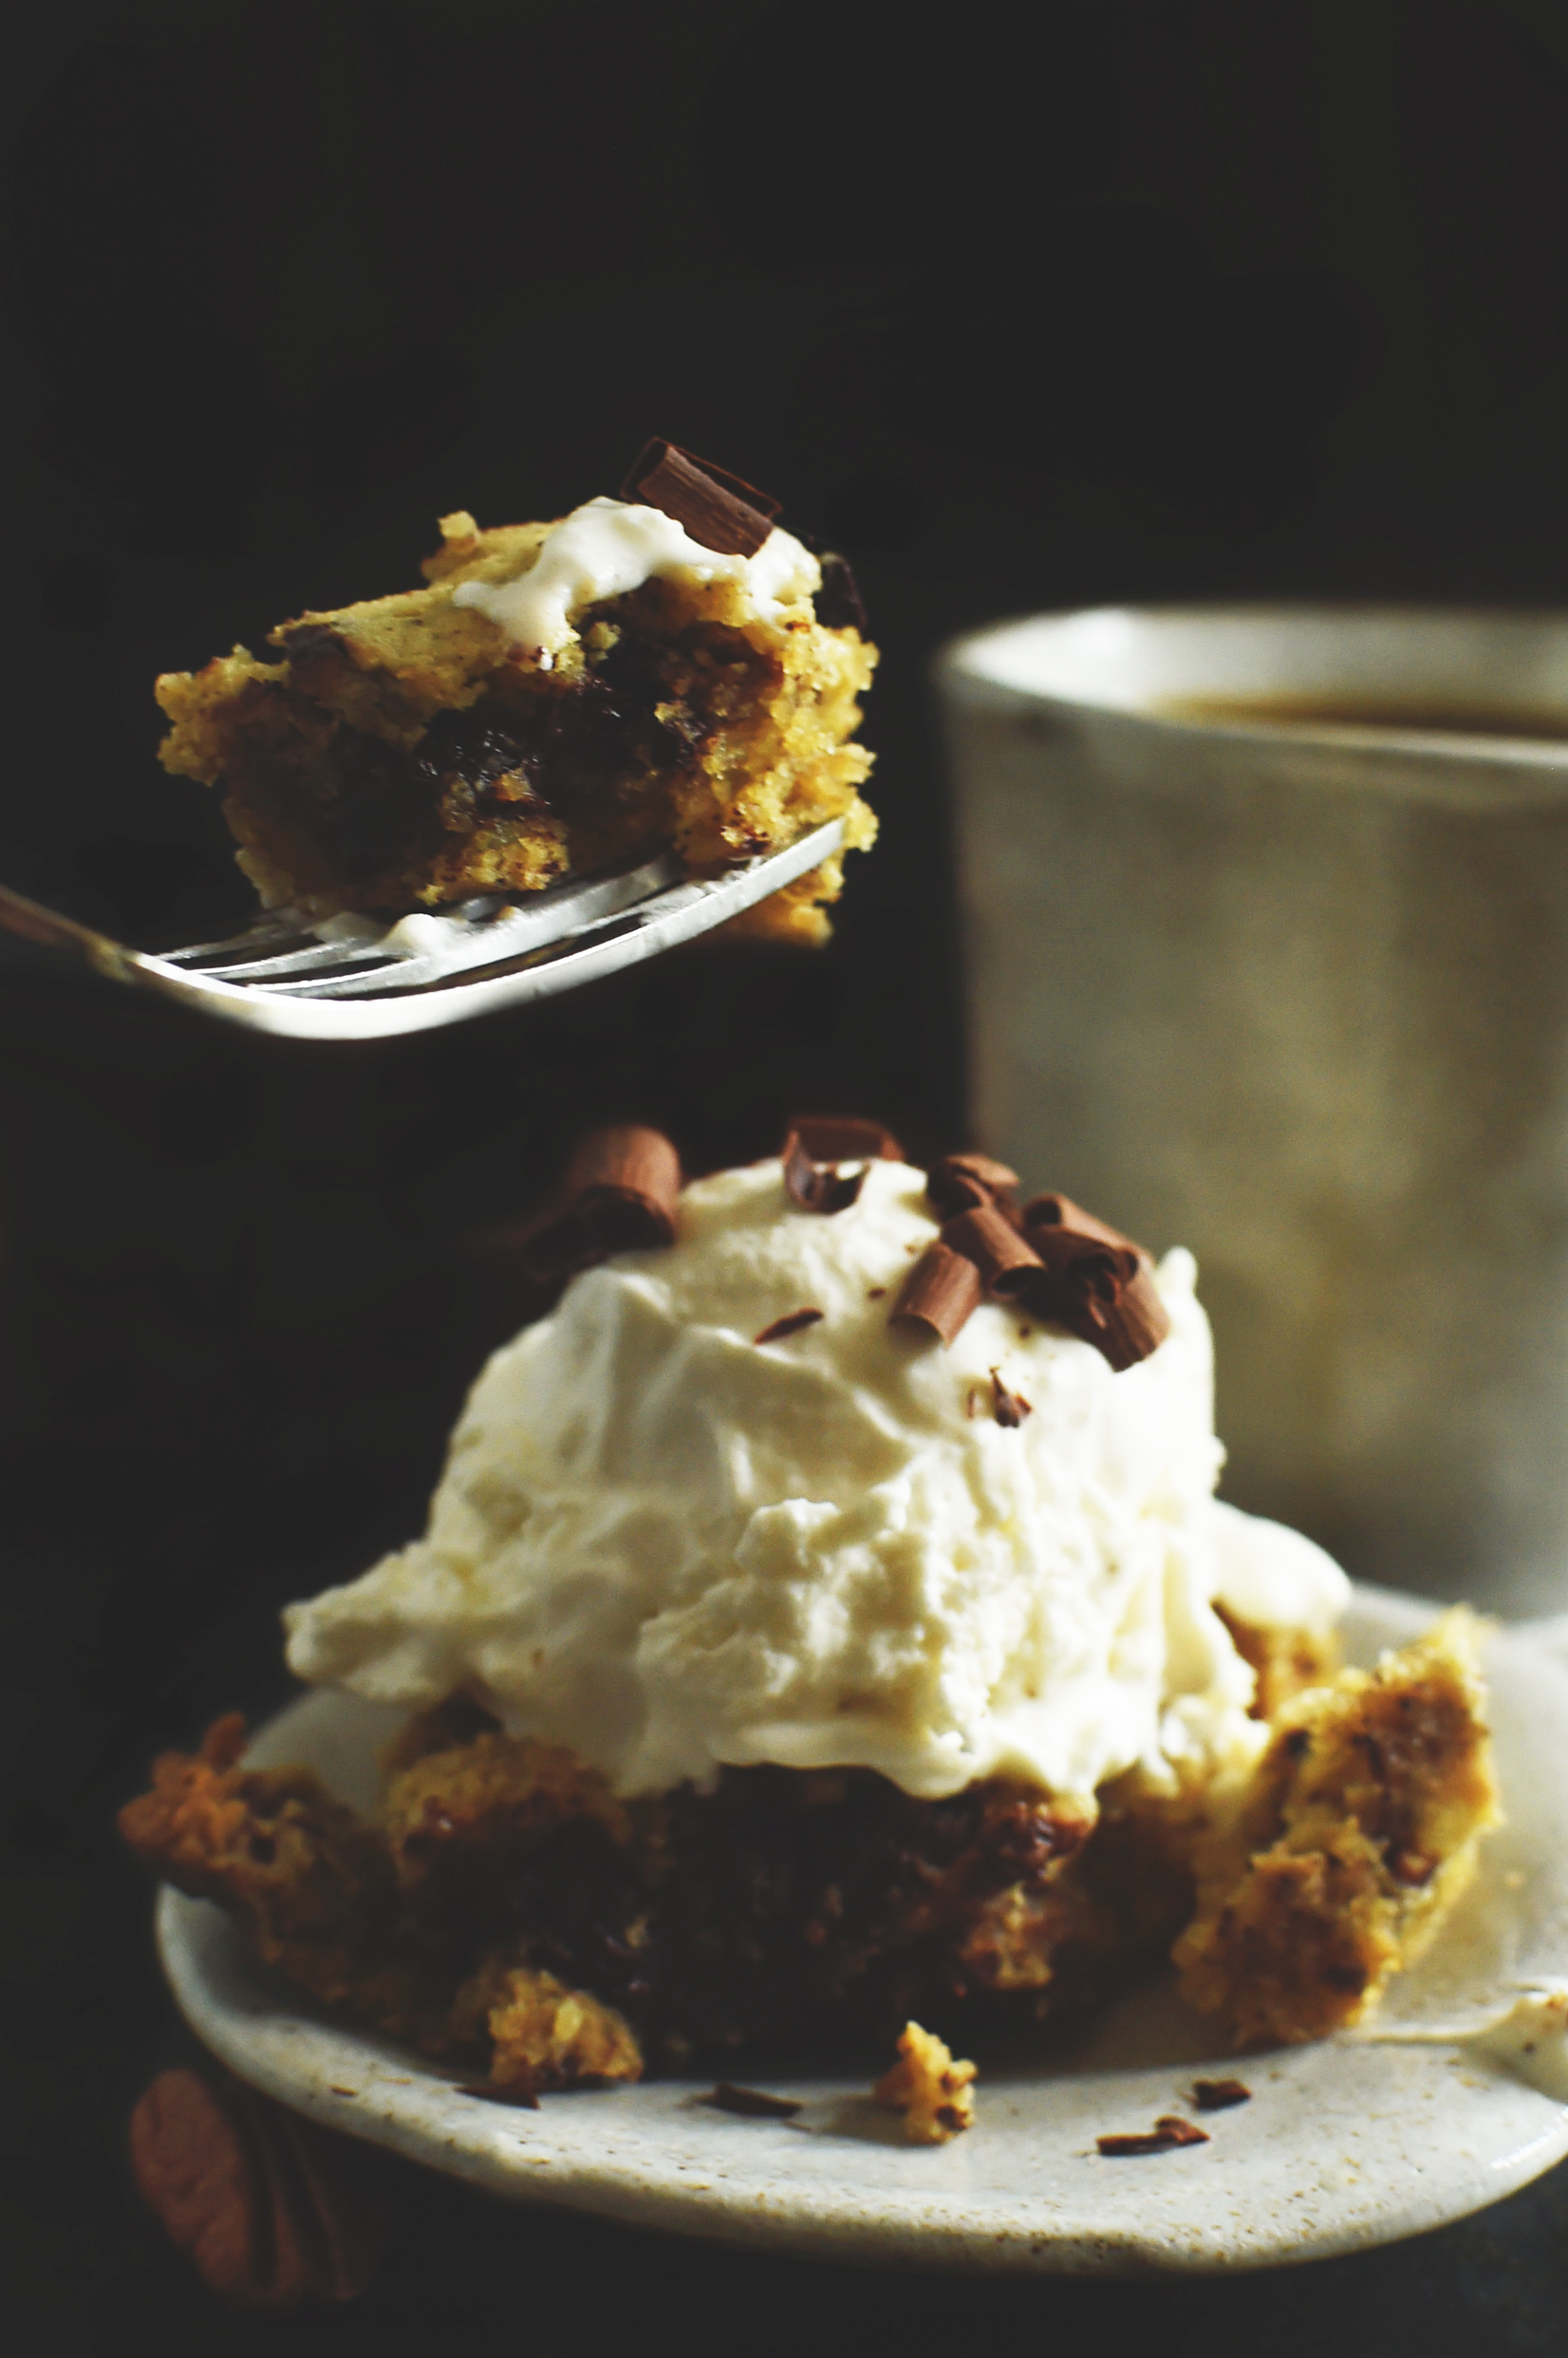 Low-Carb Skillet Chocolate Chip Cookie Recipe-Taking a bite.